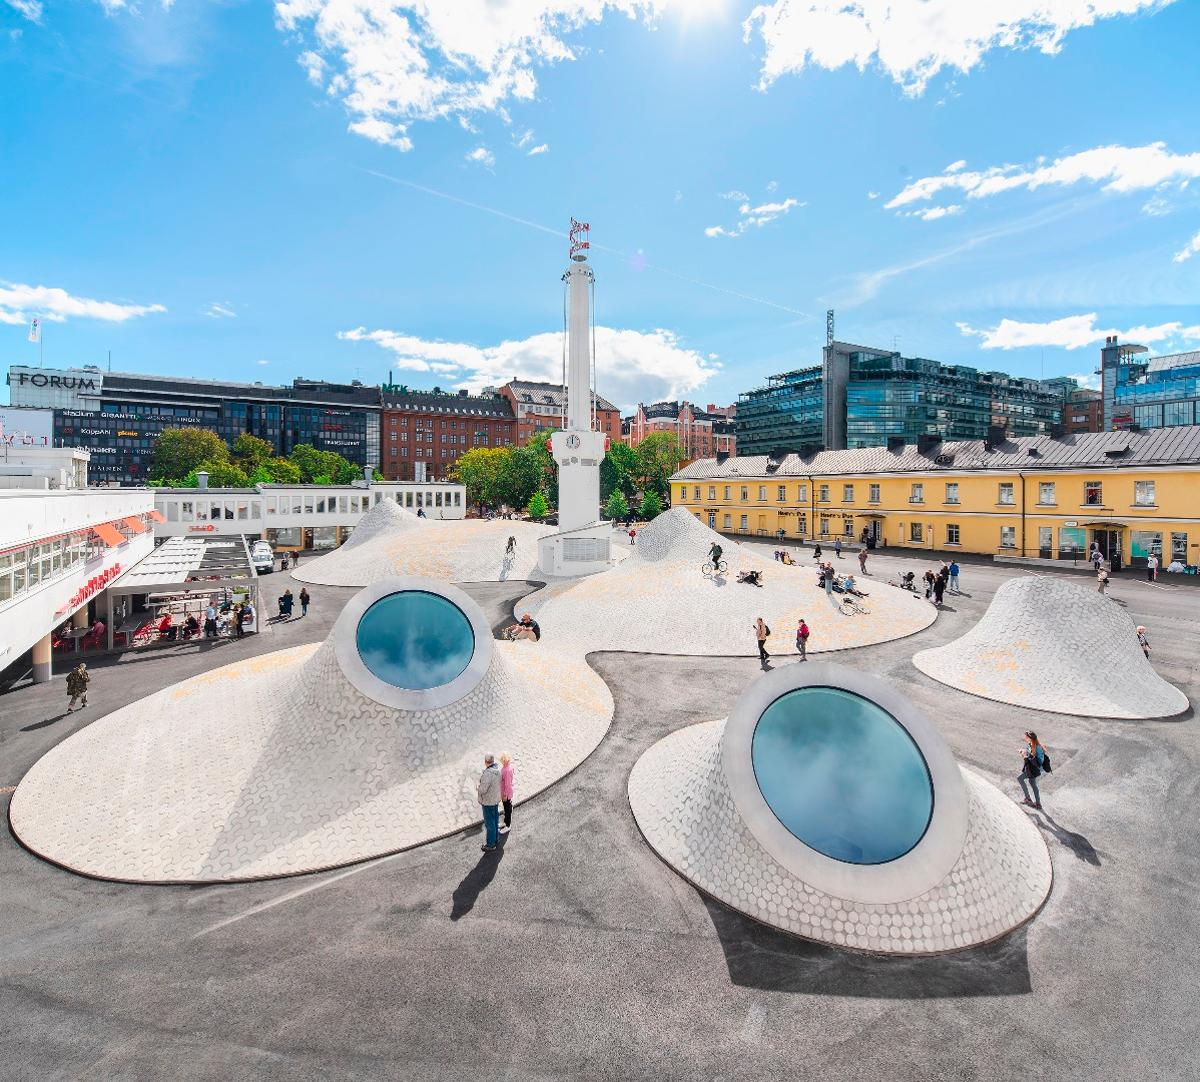 Helsinki's Amos Rex contemporary art museum, by JKMM, is one of the 534 projects shortlisted in this year's World Architecture Festival